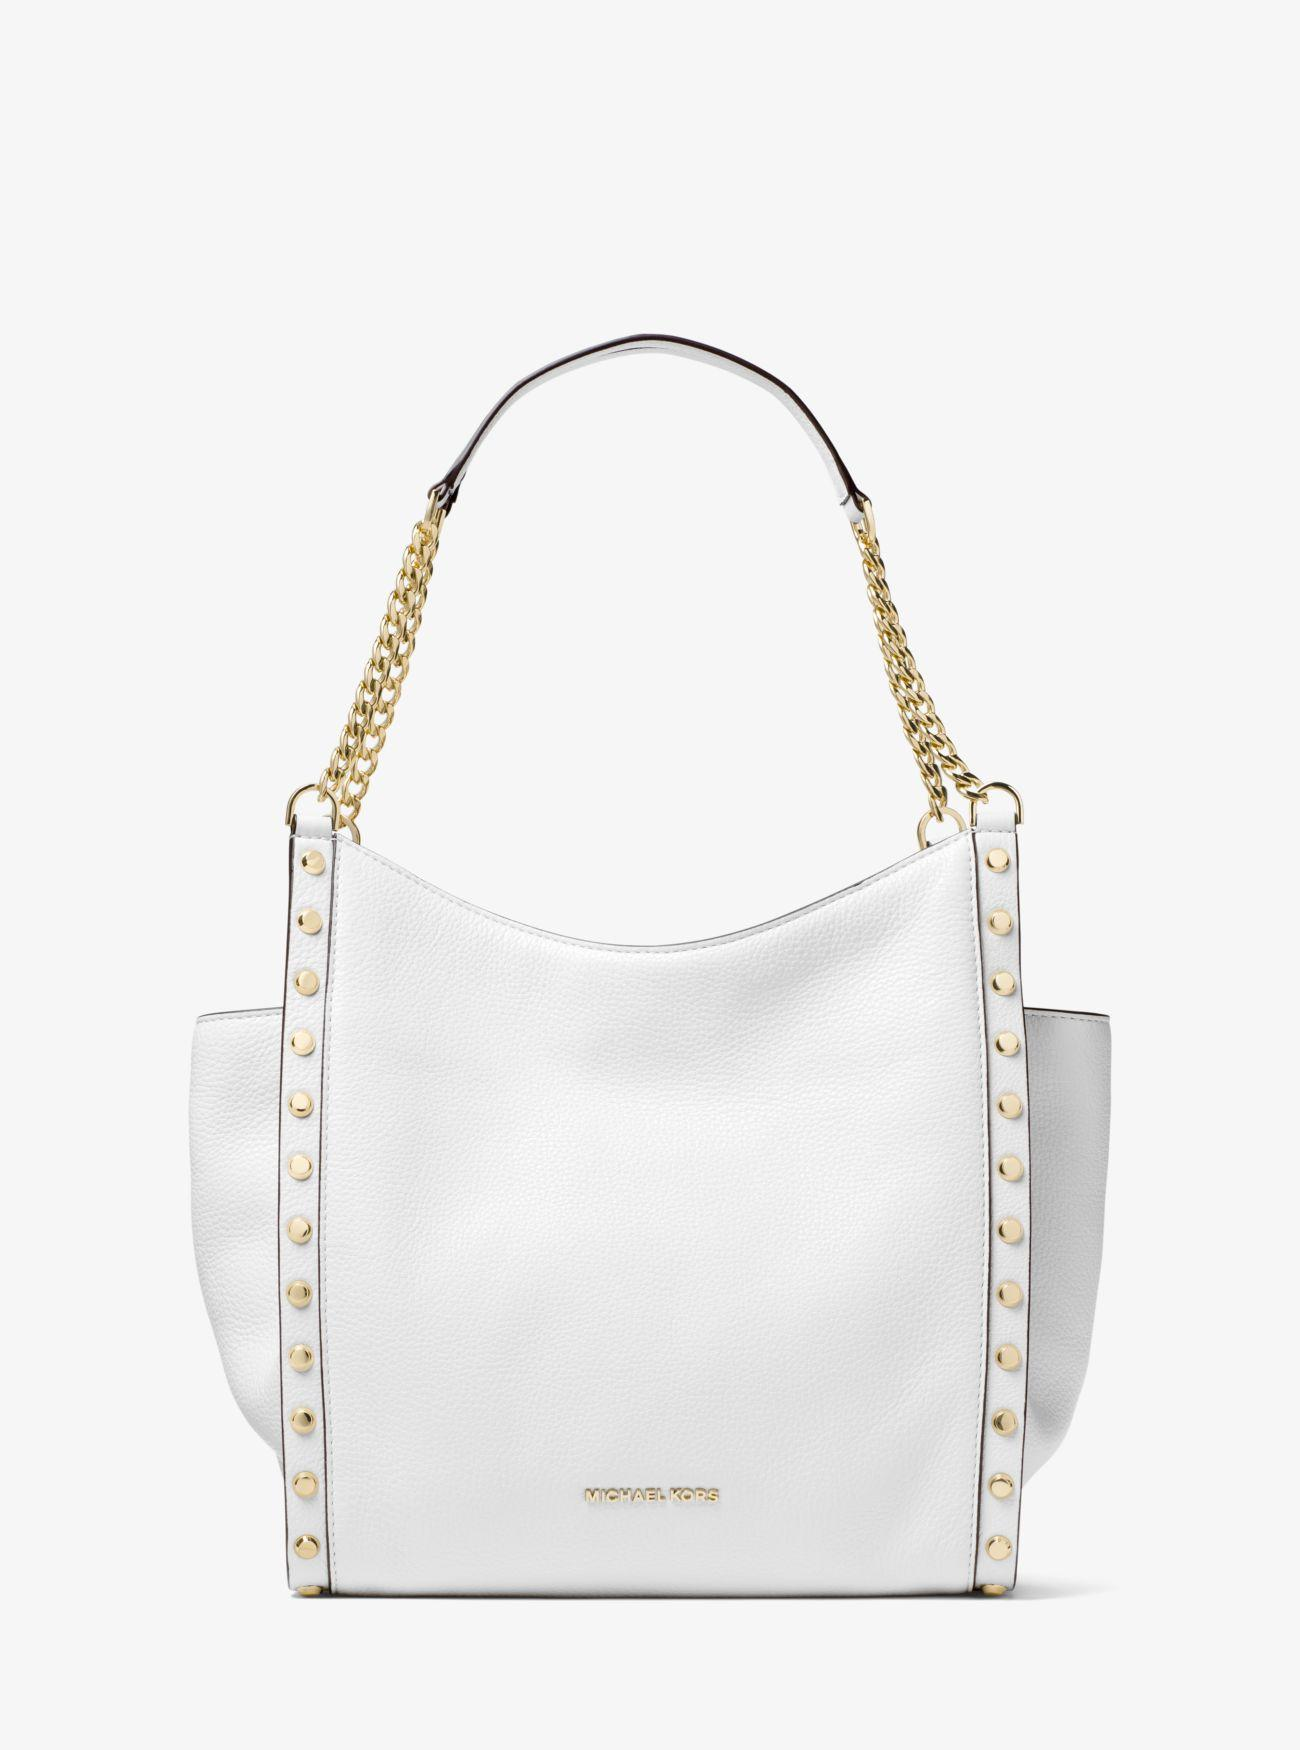 a6f9f455ccf243 Michael Kors Newbury Studded Pebbled Leather Chain Tote Bag in White ...